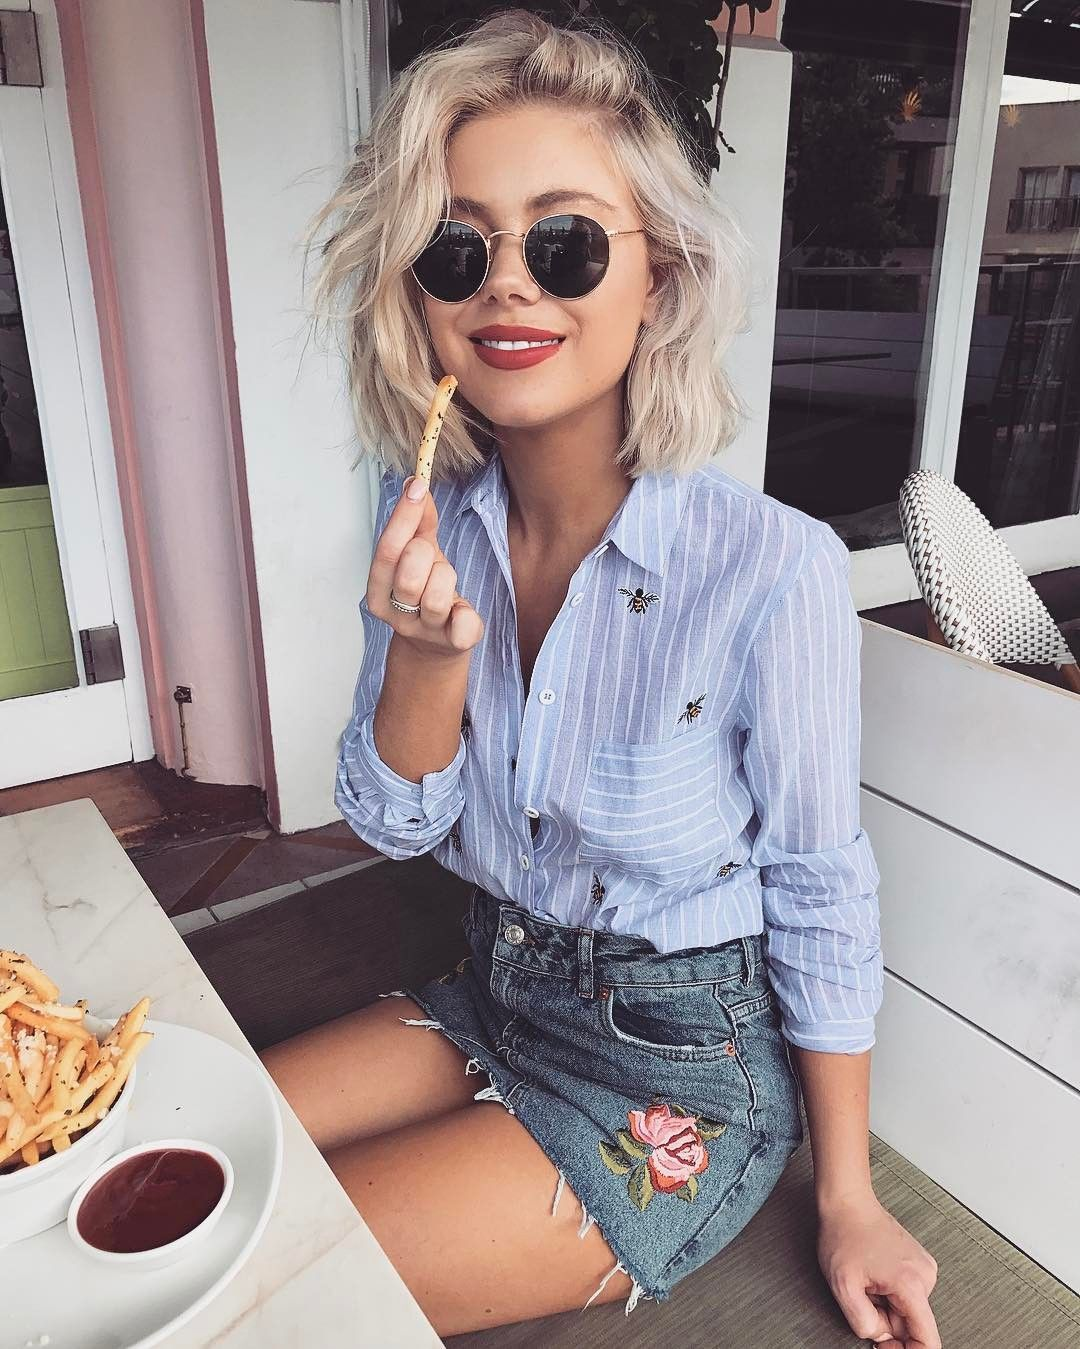 best images about jkjk on pinterest ootd instagram and kimonos